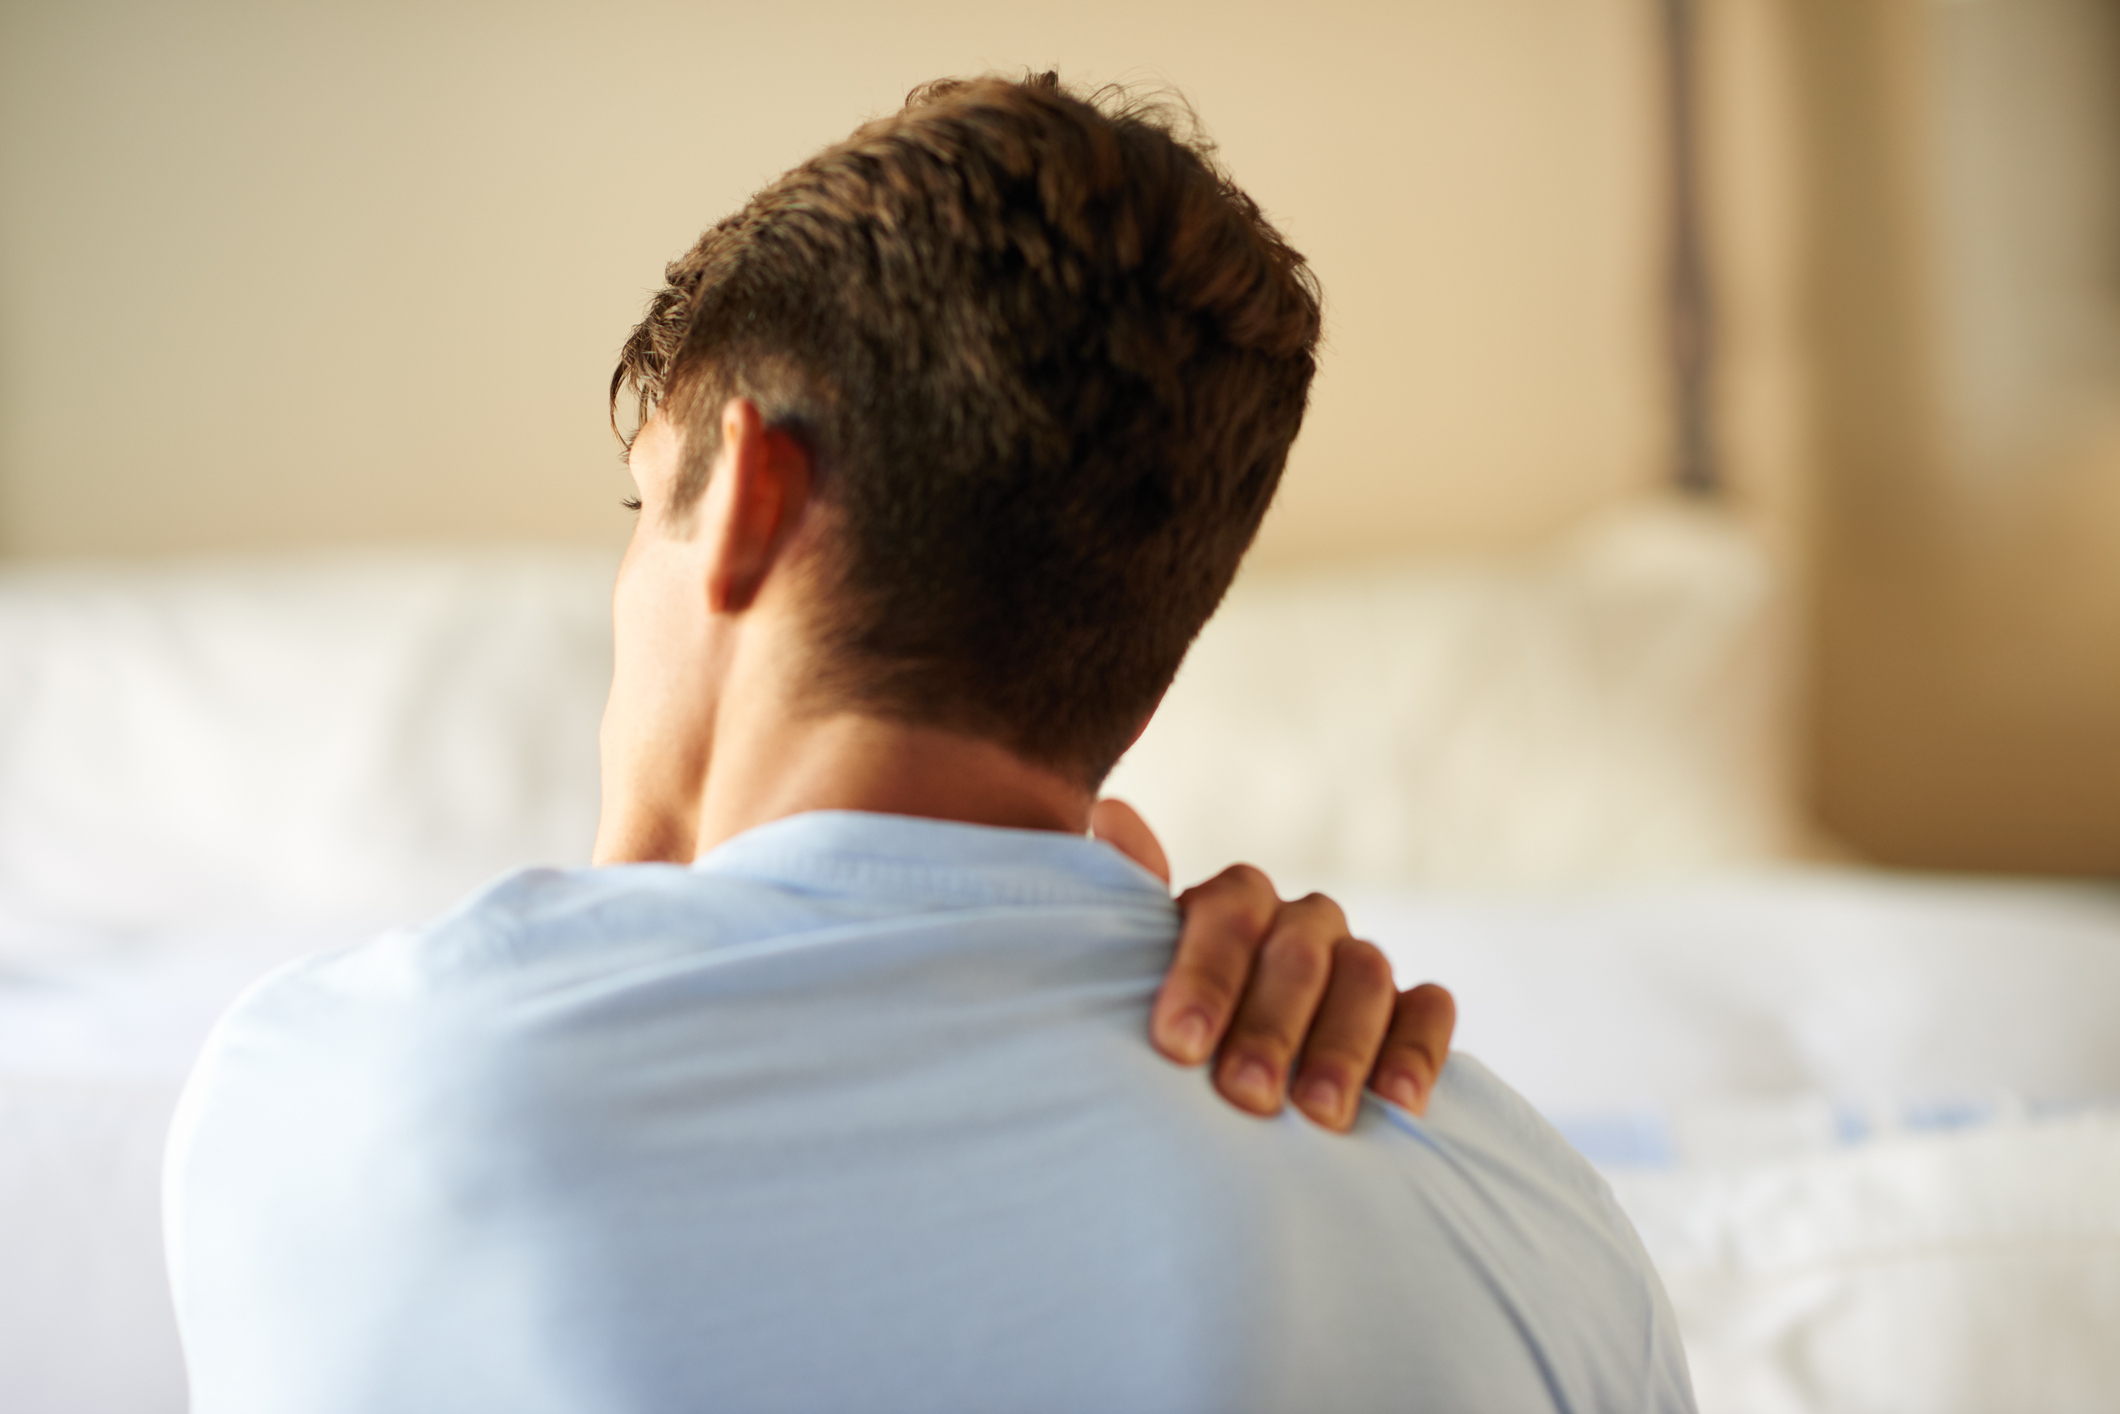 Workers Comp Settlement Amounts For Shoulder Injury – Here's What To Expect